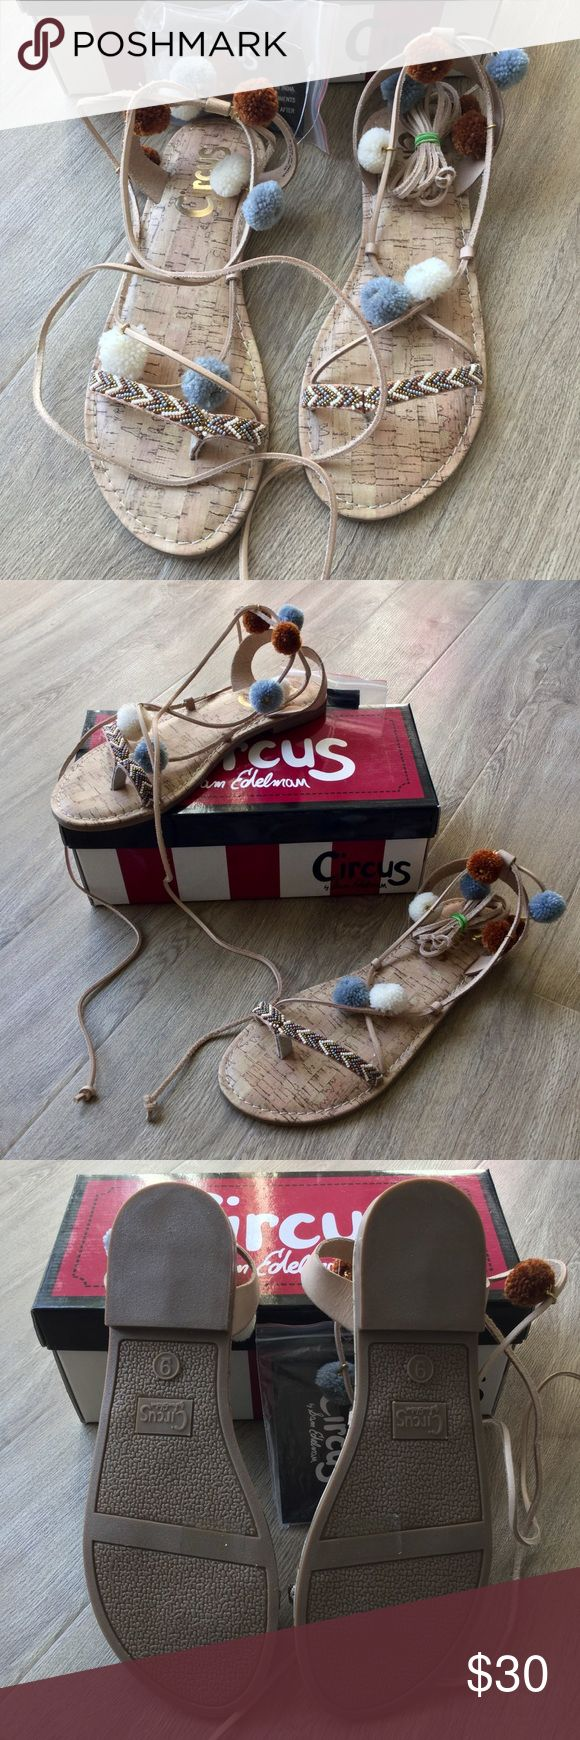 """NWB Circus by Sam Edelman Valencia flat sandal 9 The perfect go-to sandal for every casual weekend or brunch outing.  * New in box * Thong sandal * Ghillie lace-up with wrap around ankle tie * Pom accents along ties (extra poms included in box) * Brown, white, and blue poms * Chevron patterned beading details at toe strap * Faux leather upper * Synthetic sole * Sole: 10 1/2"""" approx.  * Bundle discount * No trades * Smoke free, pet friendly home Circus by Sam Edelman Shoes Sandals"""